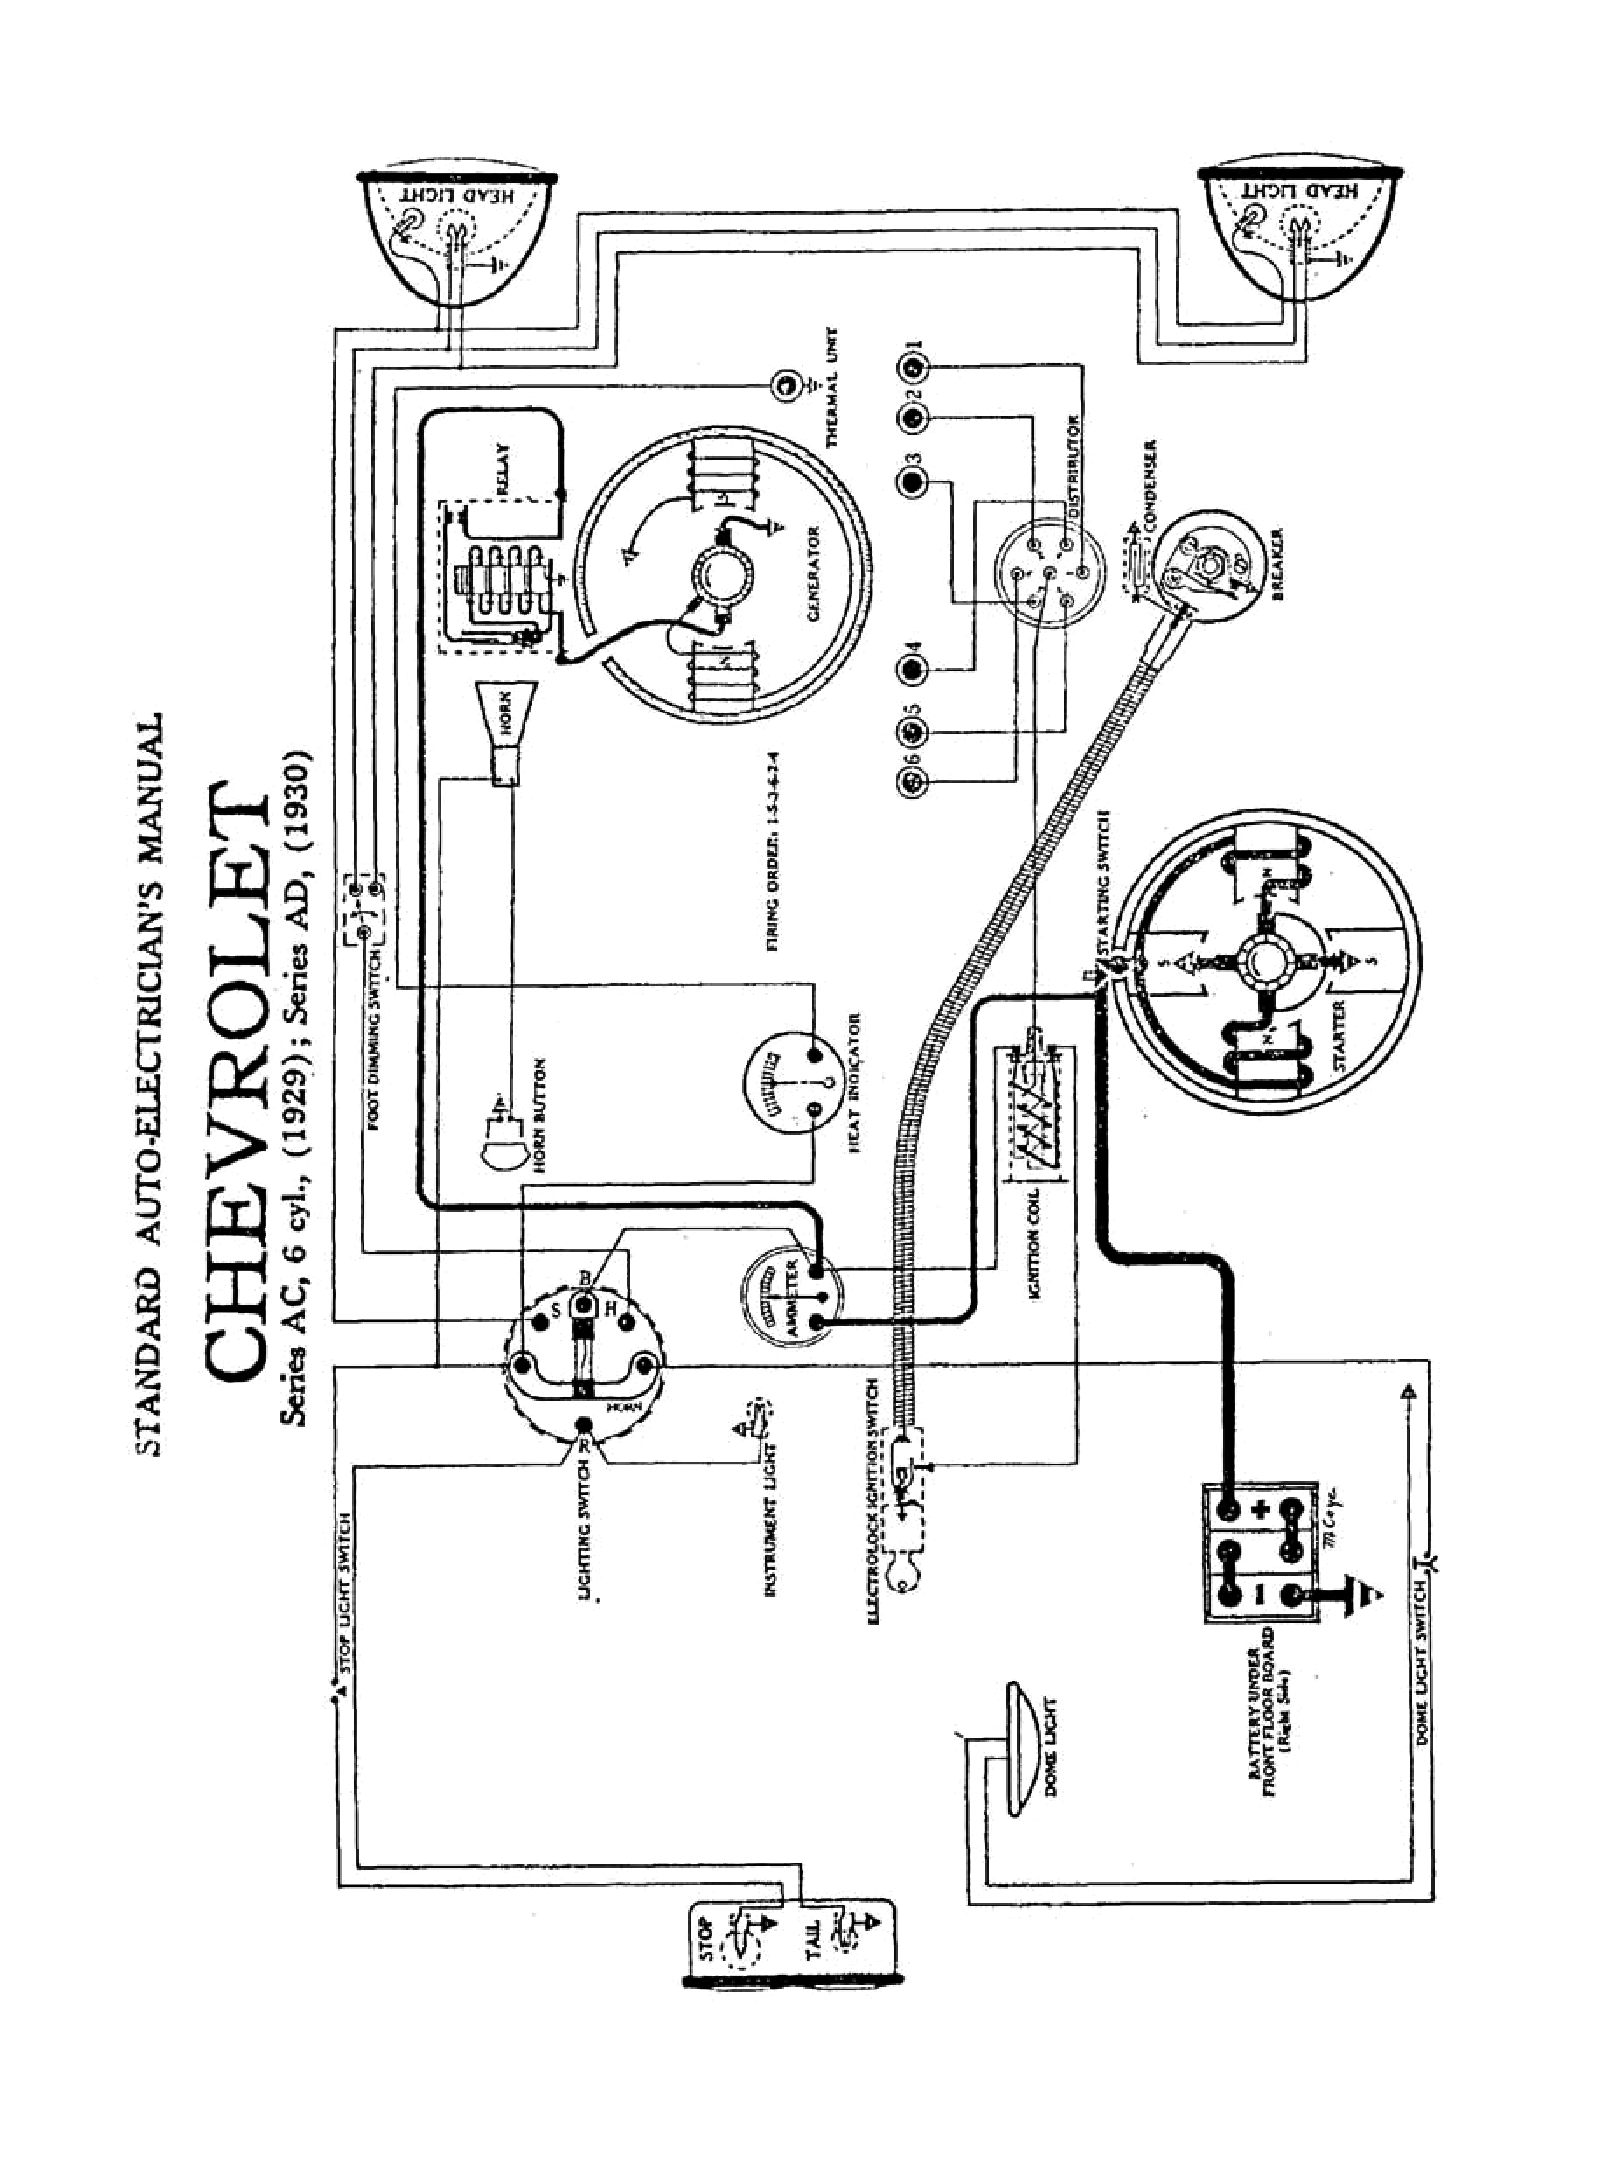 2930wiring chevy wiring diagrams Ford F-150 Wire Schematics at gsmportal.co